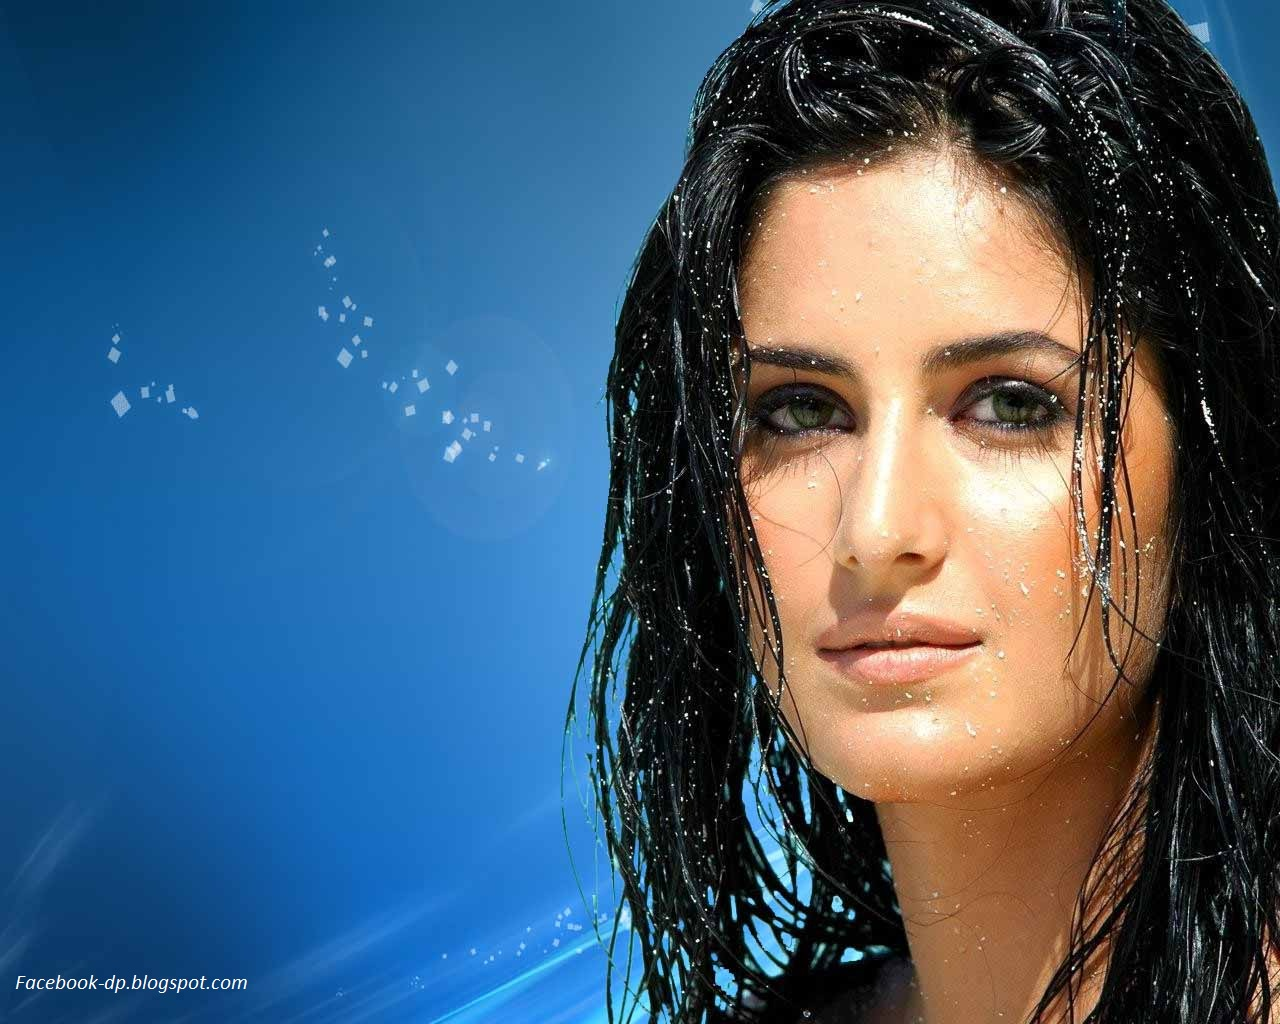 http://1.bp.blogspot.com/-od8-m8iOWGQ/TnebWvo58NI/AAAAAAAAAzQ/55CsXDXpgOc/s1600/katrina+kaif+pics%2C+indian+actor+picture%2Chot+images%2C+beautiful+katrina+picture%2Ccool+katreena+kaif+wallpapers%2C+dashing%2C+smart++pics%2Cfacebook%2Cimage%2Cpicture%2Cwallpapers%2Cfacebook+profile+pic+1+%285%29.jpg